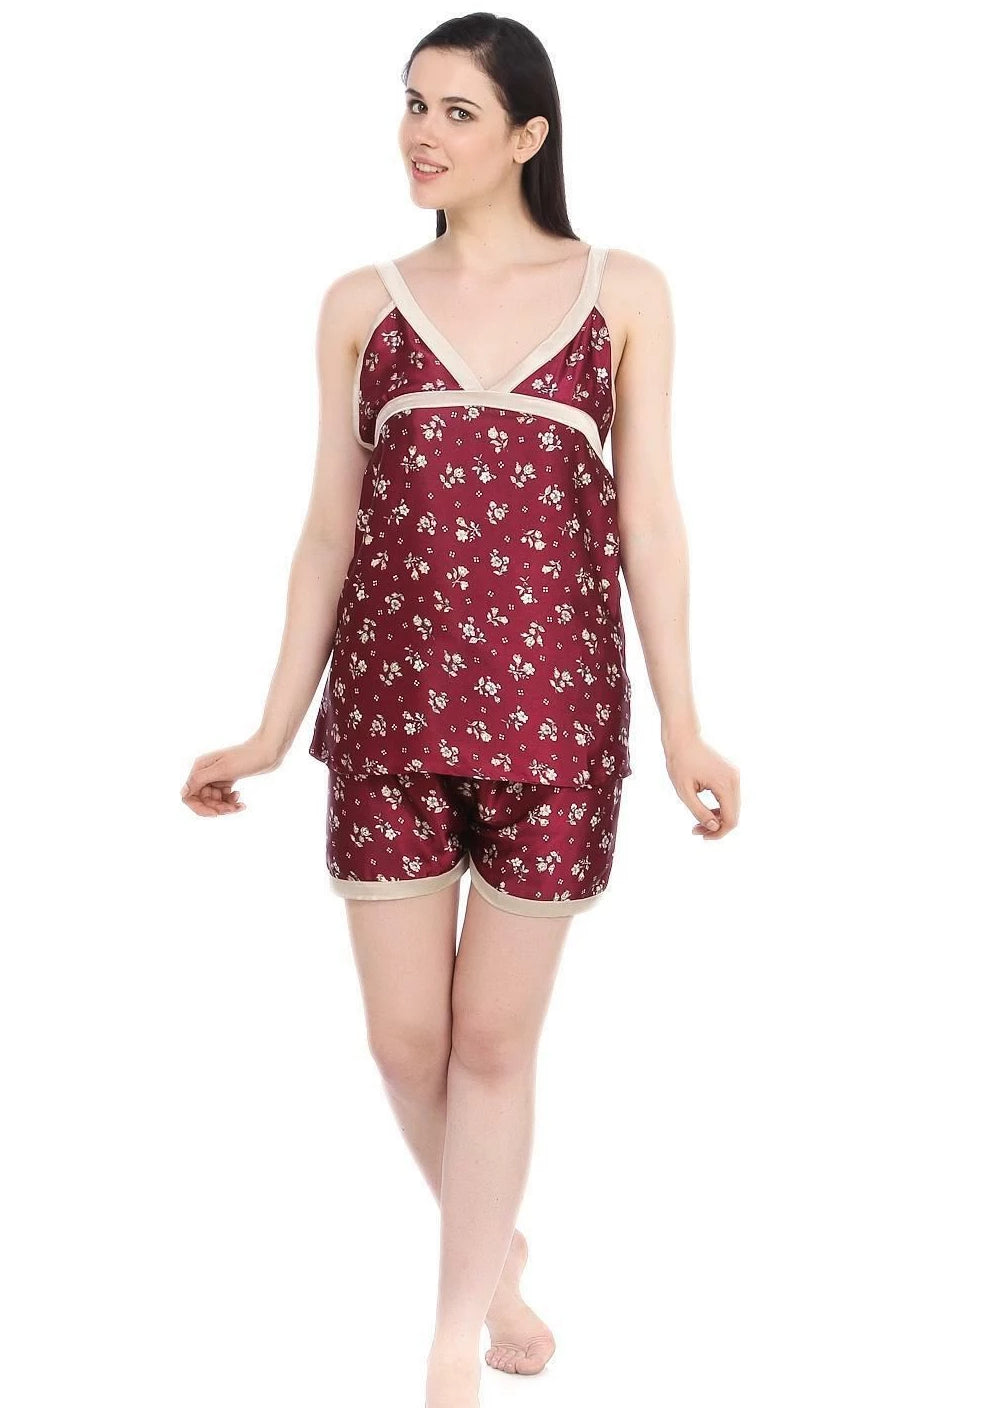 Fashion Women Top & Shorts Set [colour]- Hautie UK, #Nightfashion | #Underfashion